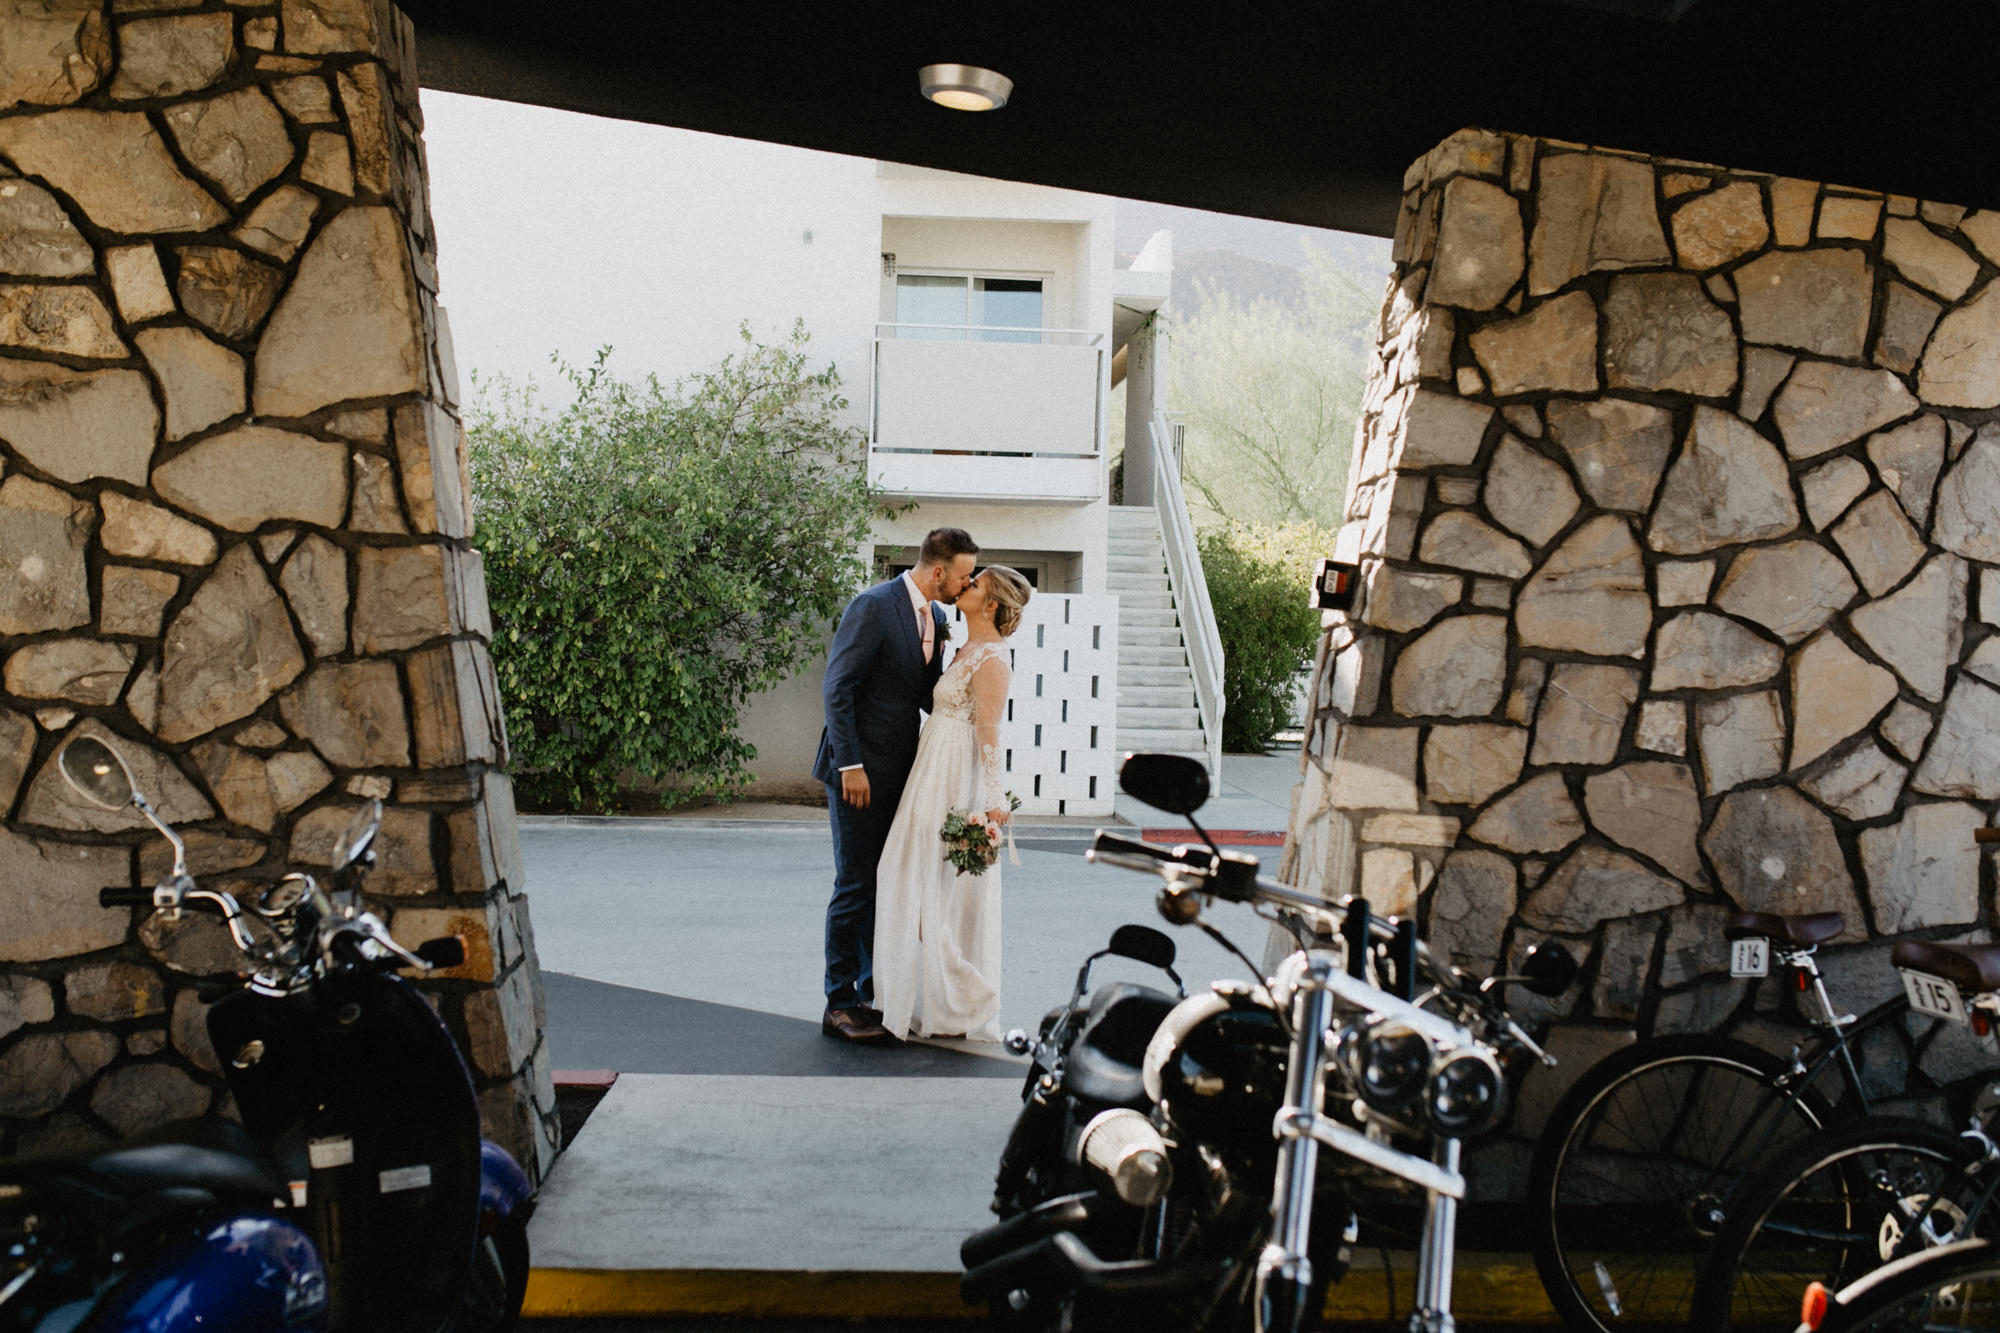 ace_hotel_palm_springs_wedding-51.jpg